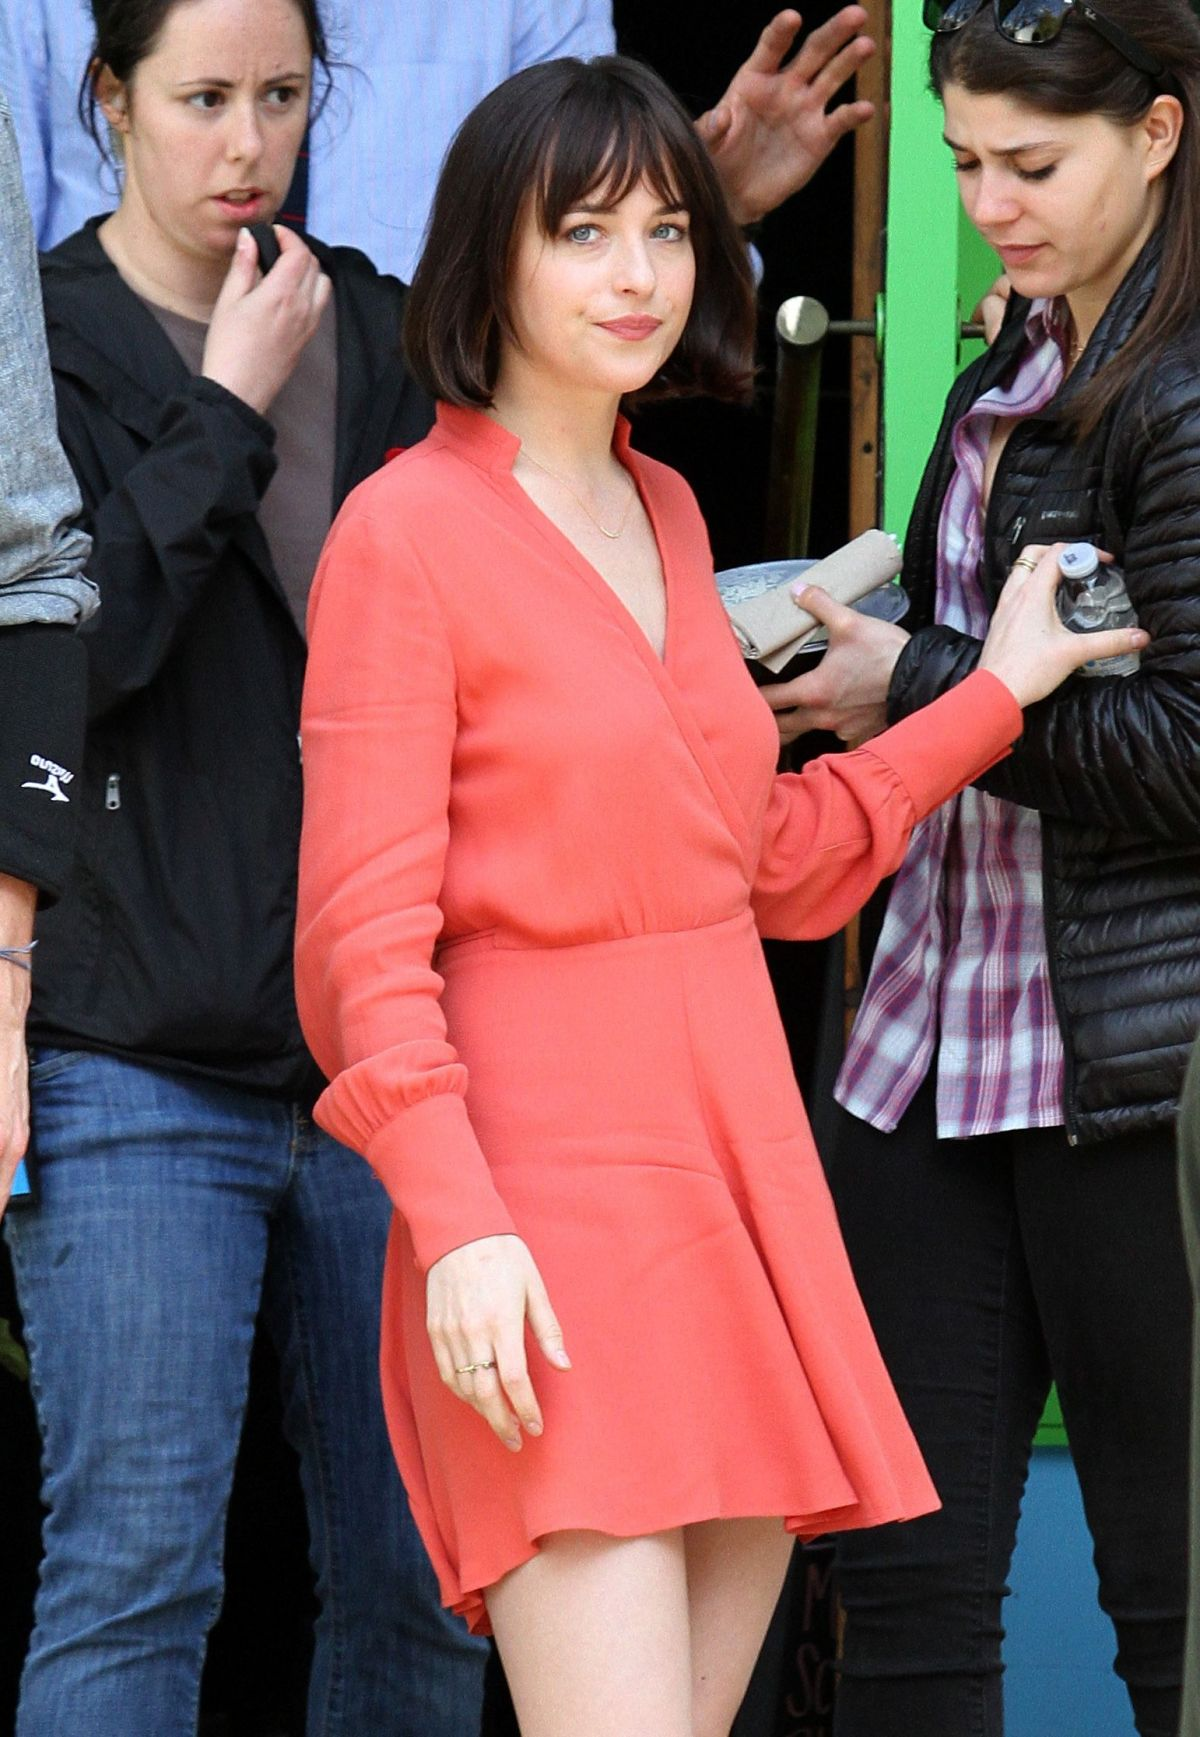 Dakota johnson at how to be single movie set in new york 04212015 dakota johnson at how to be single movie set in new york 0421 ccuart Gallery